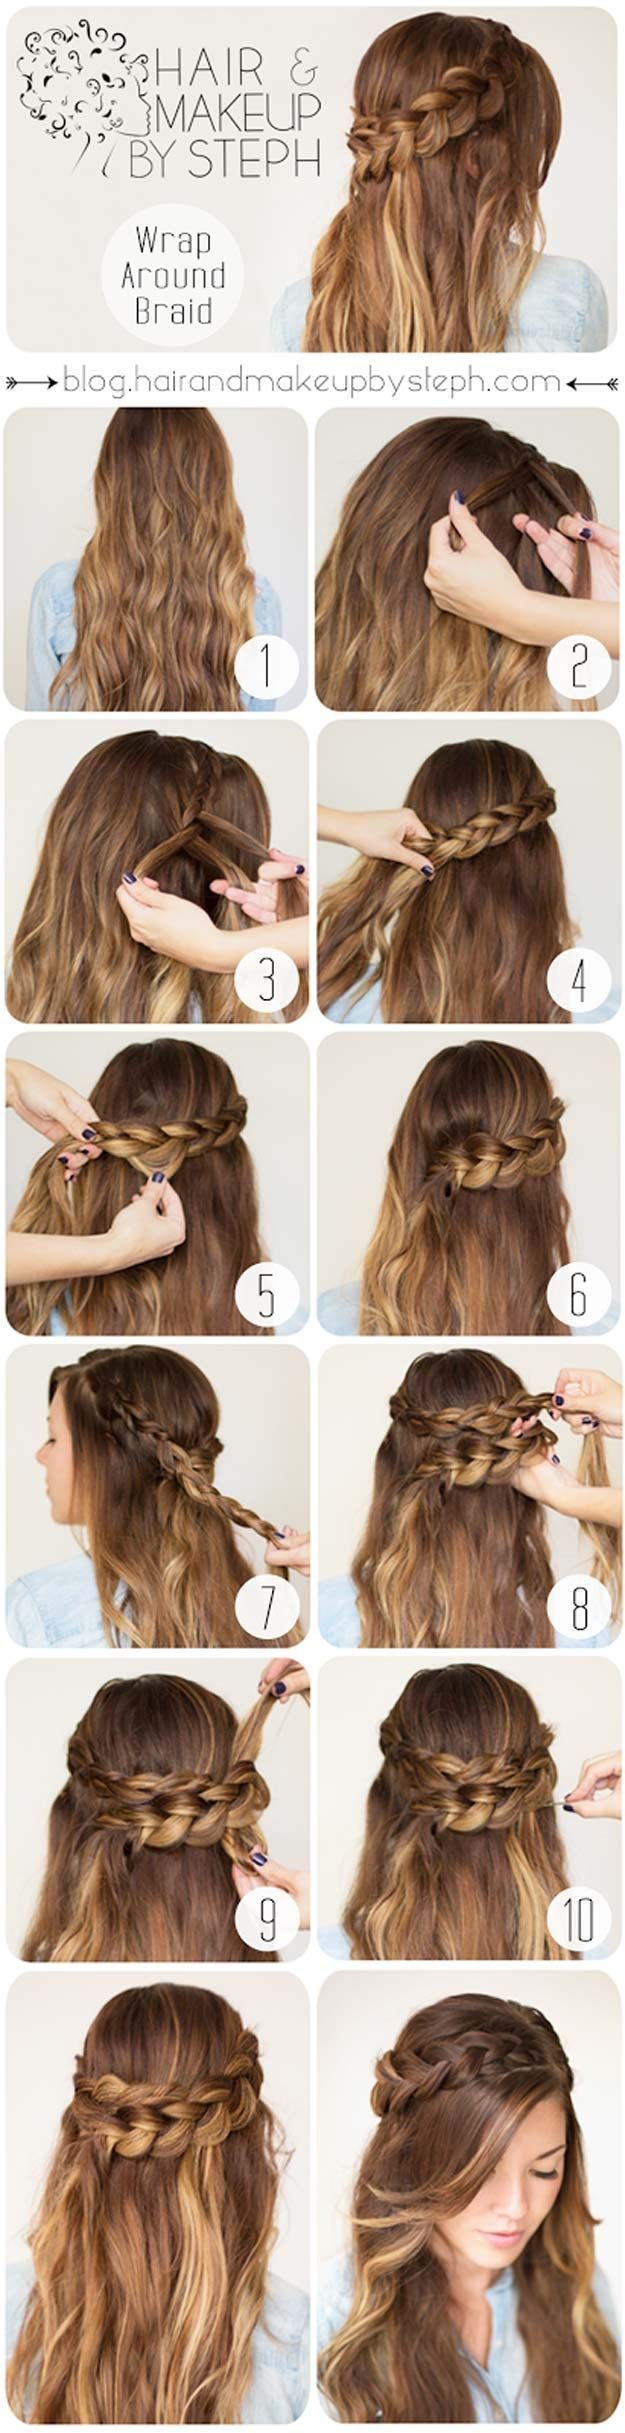 Easy Hairstyles for Work - Wrap Around Braid - Quick and Easy Hairstyles For The Lazy Girl. Great Ideas For Medium Hair, Long Hair, Short Hair, The Undo and Shoulder Length Hair. DIY And Step By Step - https://www.thegoddess.com/easy-hairstyles-for-work #diyhairstylesstepbystep